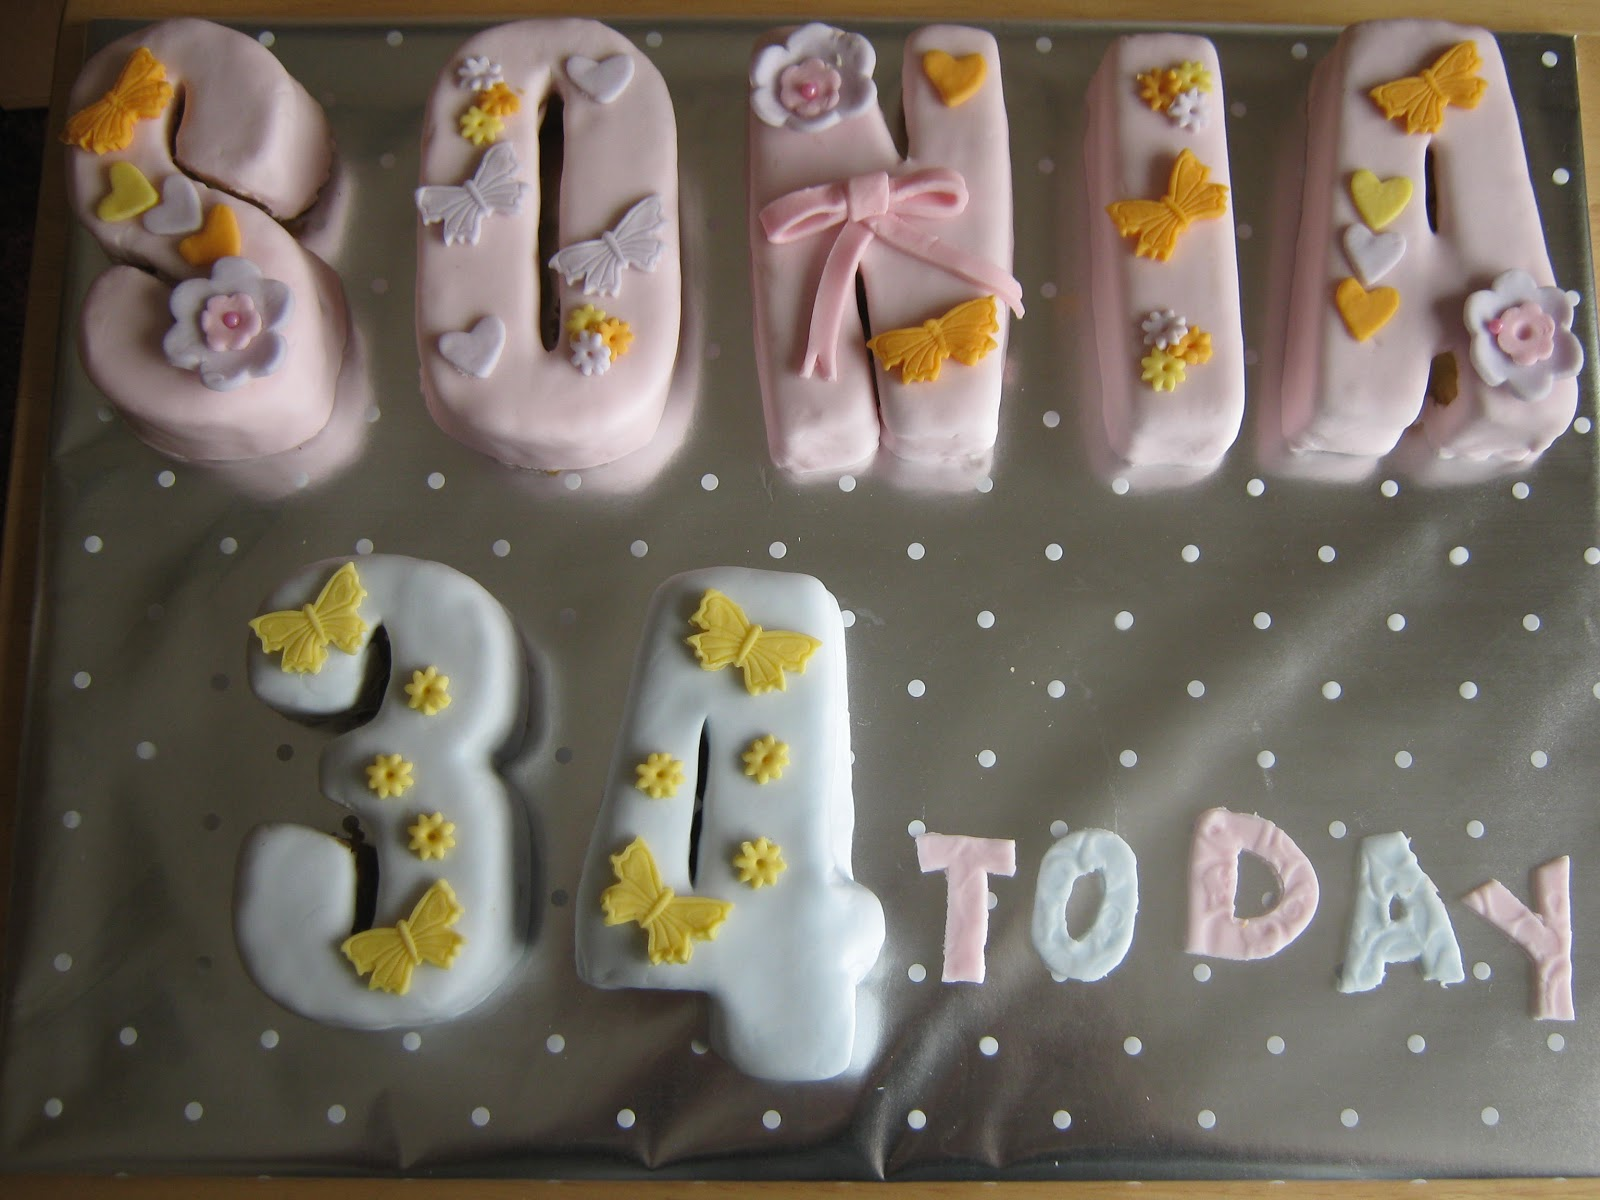 Cake Images With Letter S : Magic Lady Cakes: Birthday Letter Cakes